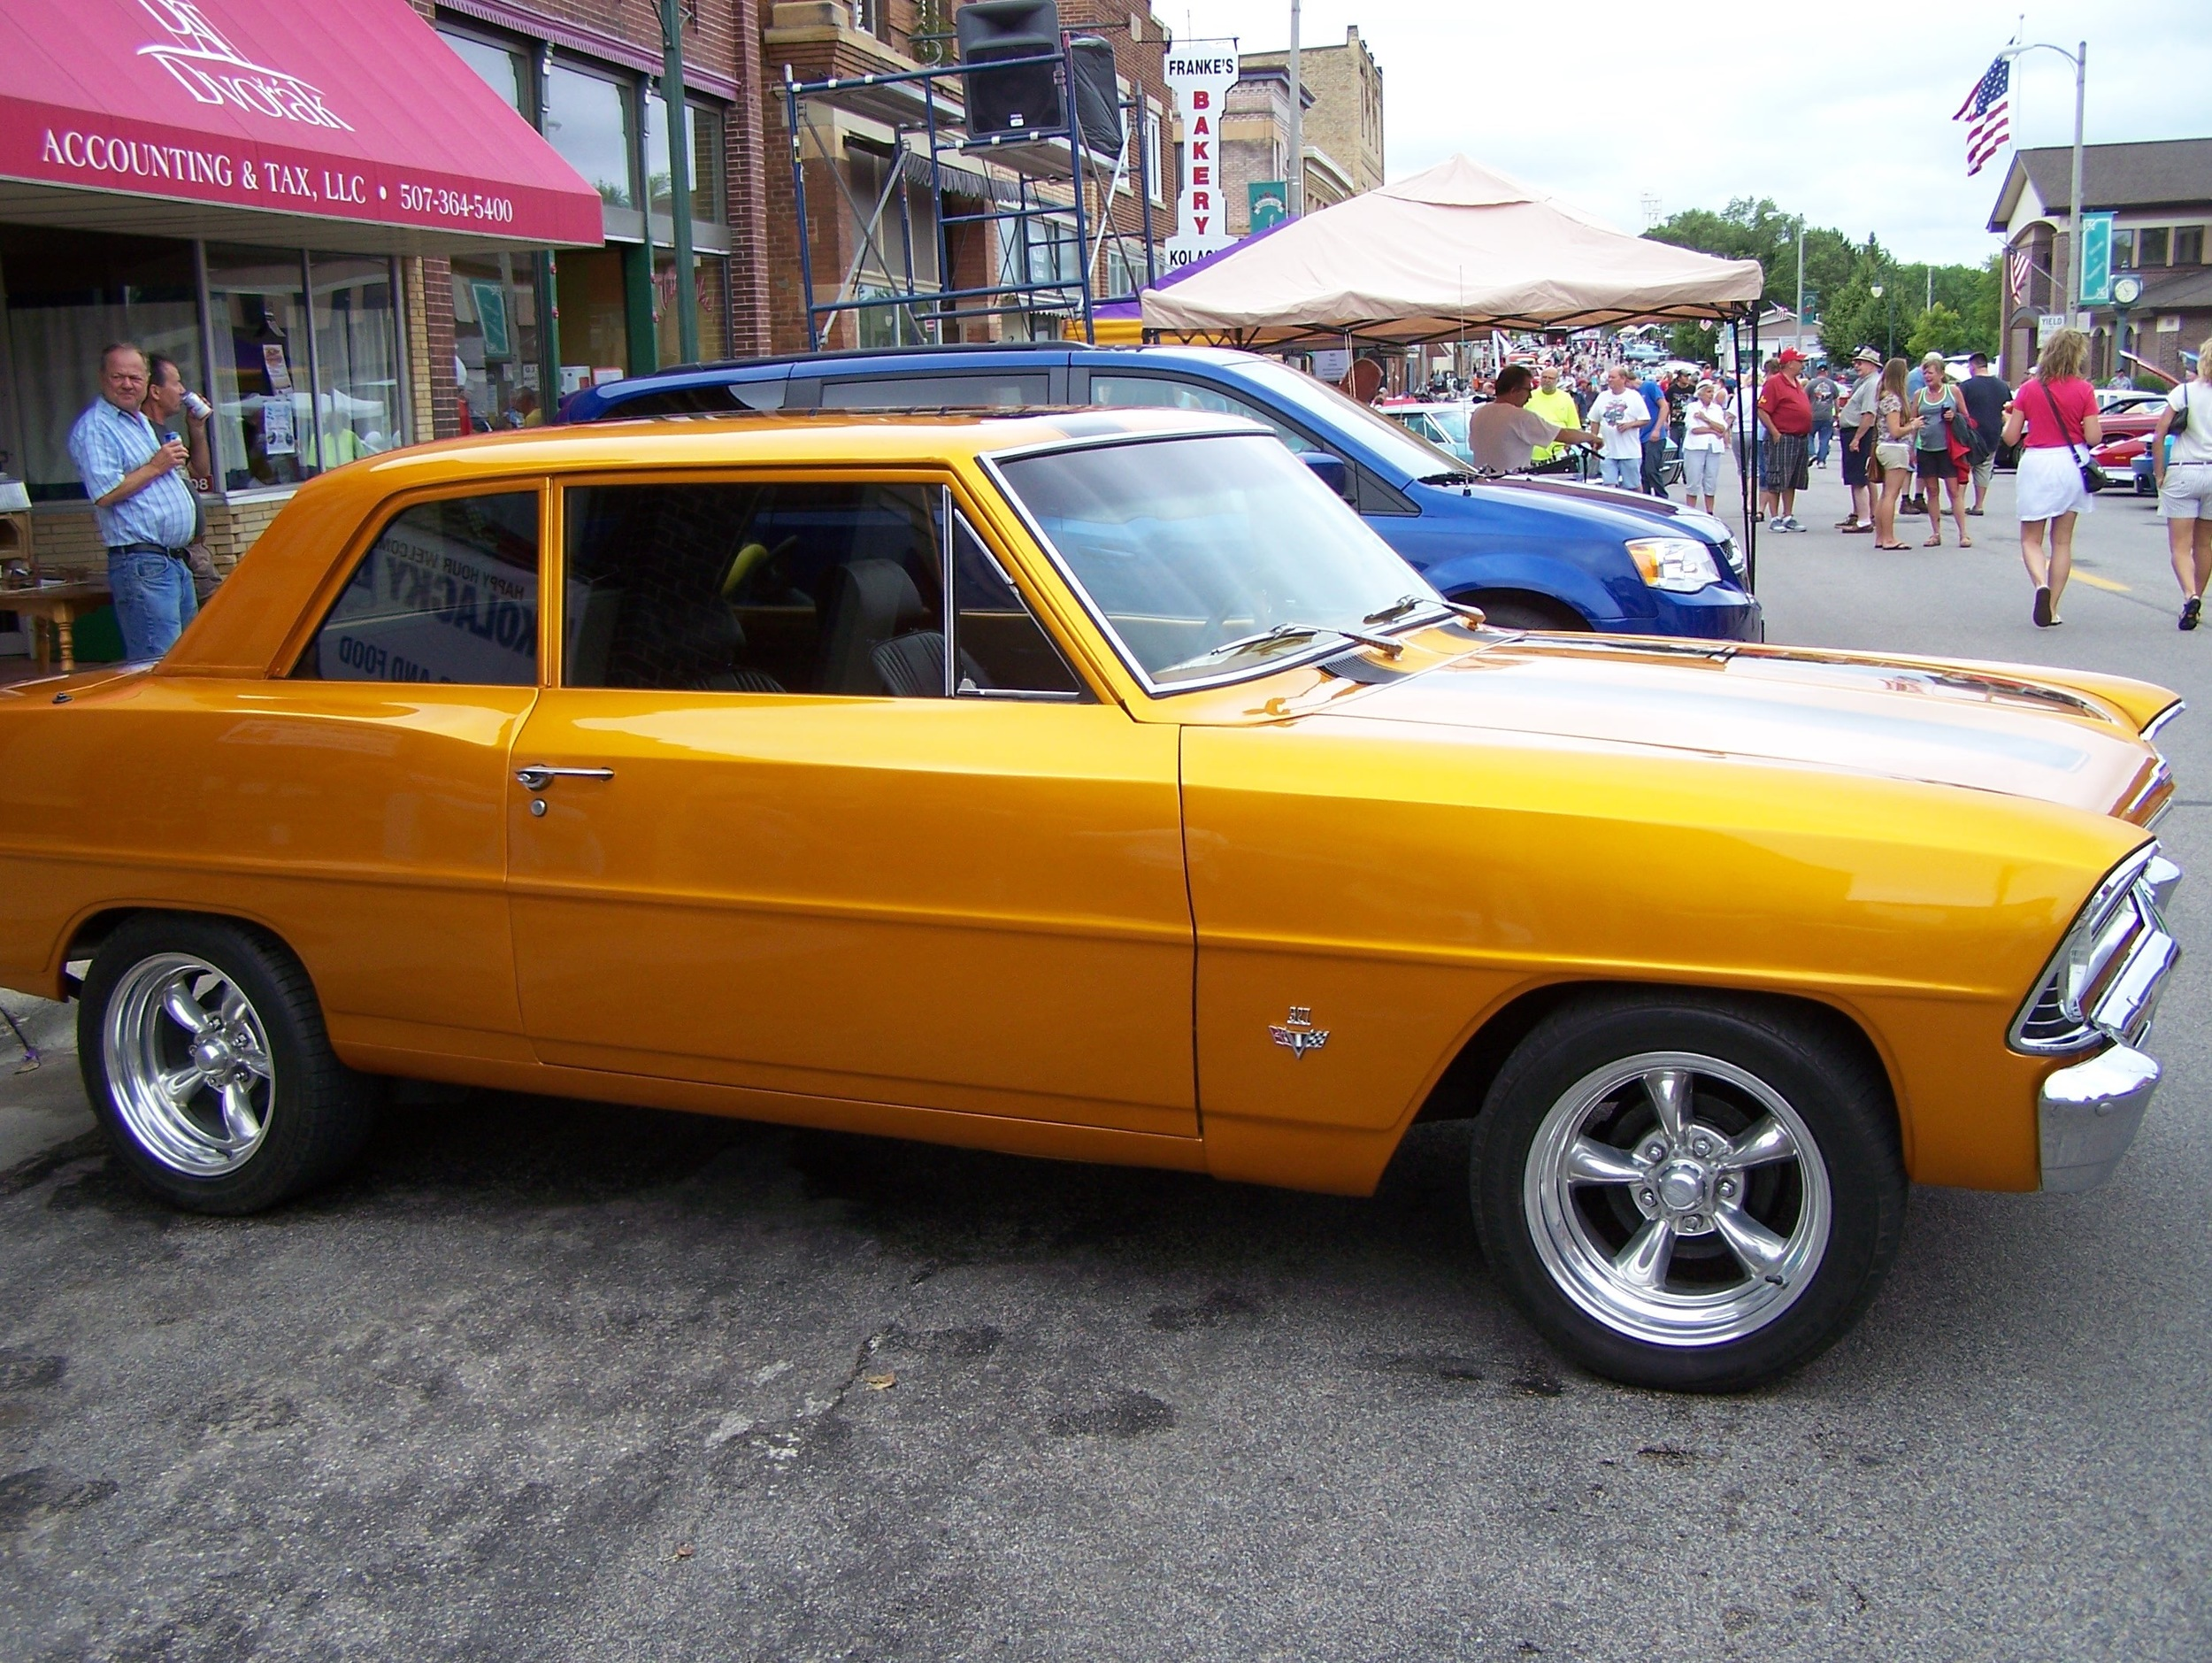 2016 Best of Show - 1967 Chevrolet Nova